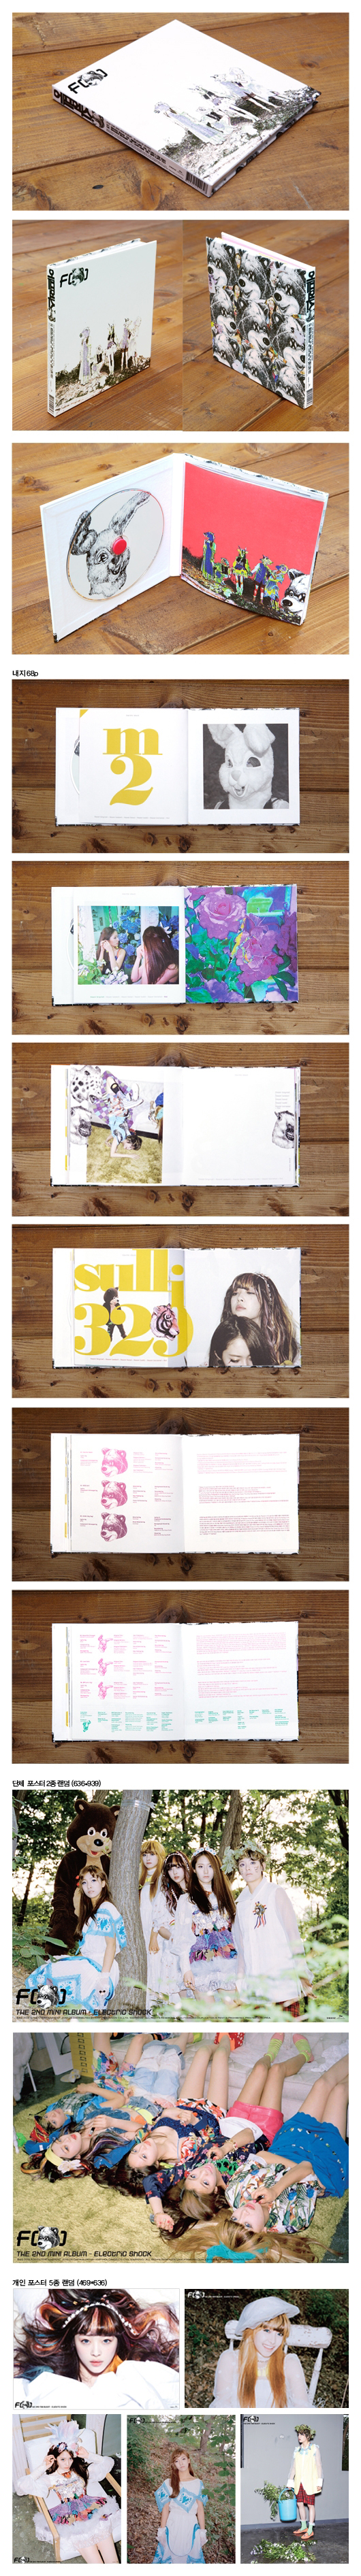 F(x) Electric Shock album packaging detail.png